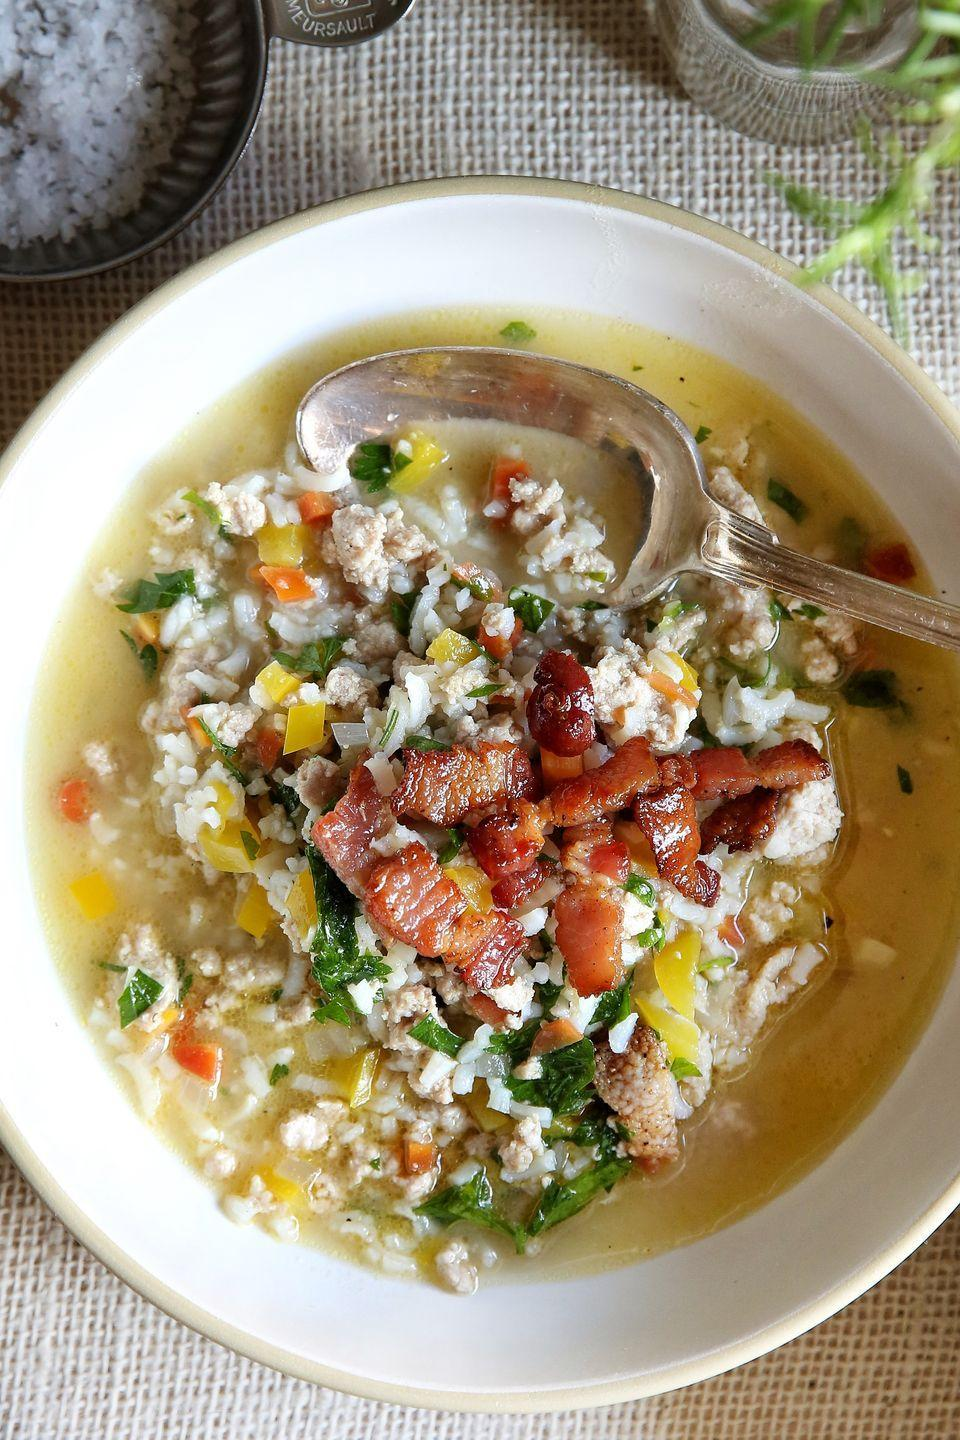 "<p>Oh, how we've missed soup season!</p><p>Get the recipe from <a href=""https://www.delish.com/cooking/recipe-ideas/recipes/a49666/turkey-and-rice-vegetable-soup-recipe/"" rel=""nofollow noopener"" target=""_blank"" data-ylk=""slk:Delish"" class=""link rapid-noclick-resp"">Delish</a>.</p>"